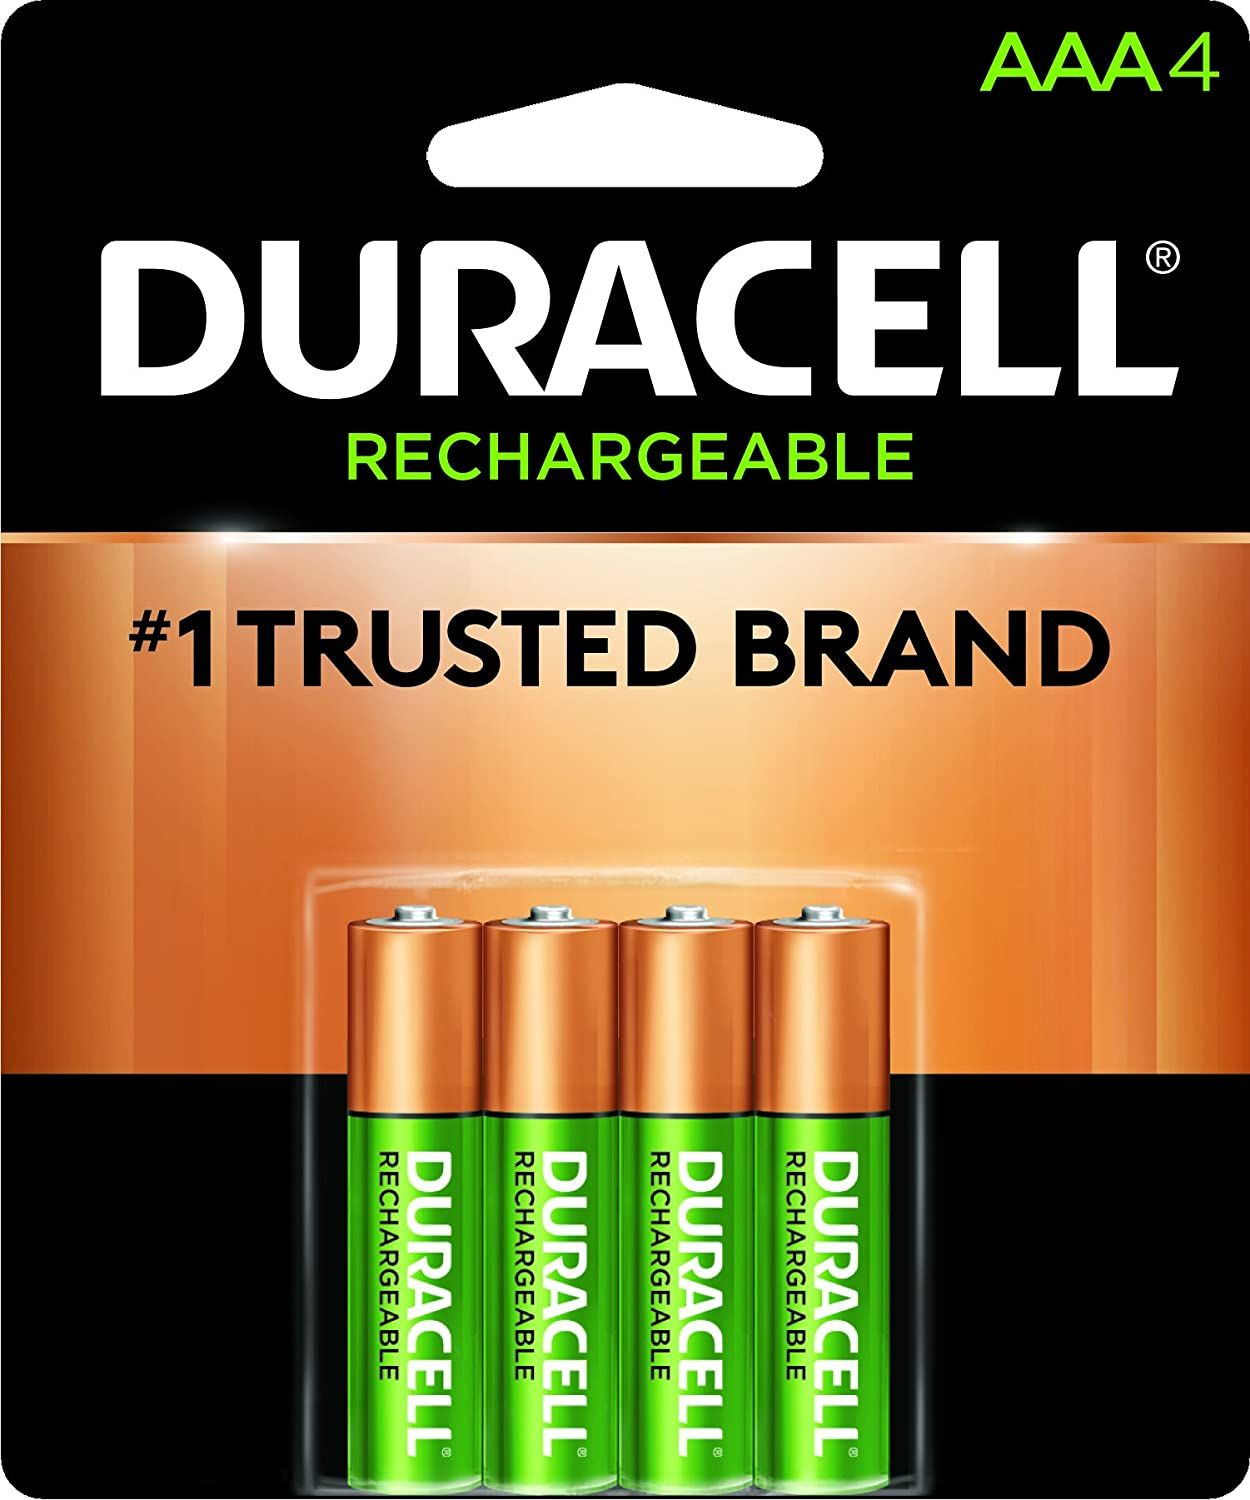 Amazon Duracell Rechargeable Aaa Batteries Long Lasting All Purpose Triple A Battery For Household And Business 4 Count Just As Low As 4 14 W Subscrib Duracell Rechargeable Batteries Aaa Battery Charger